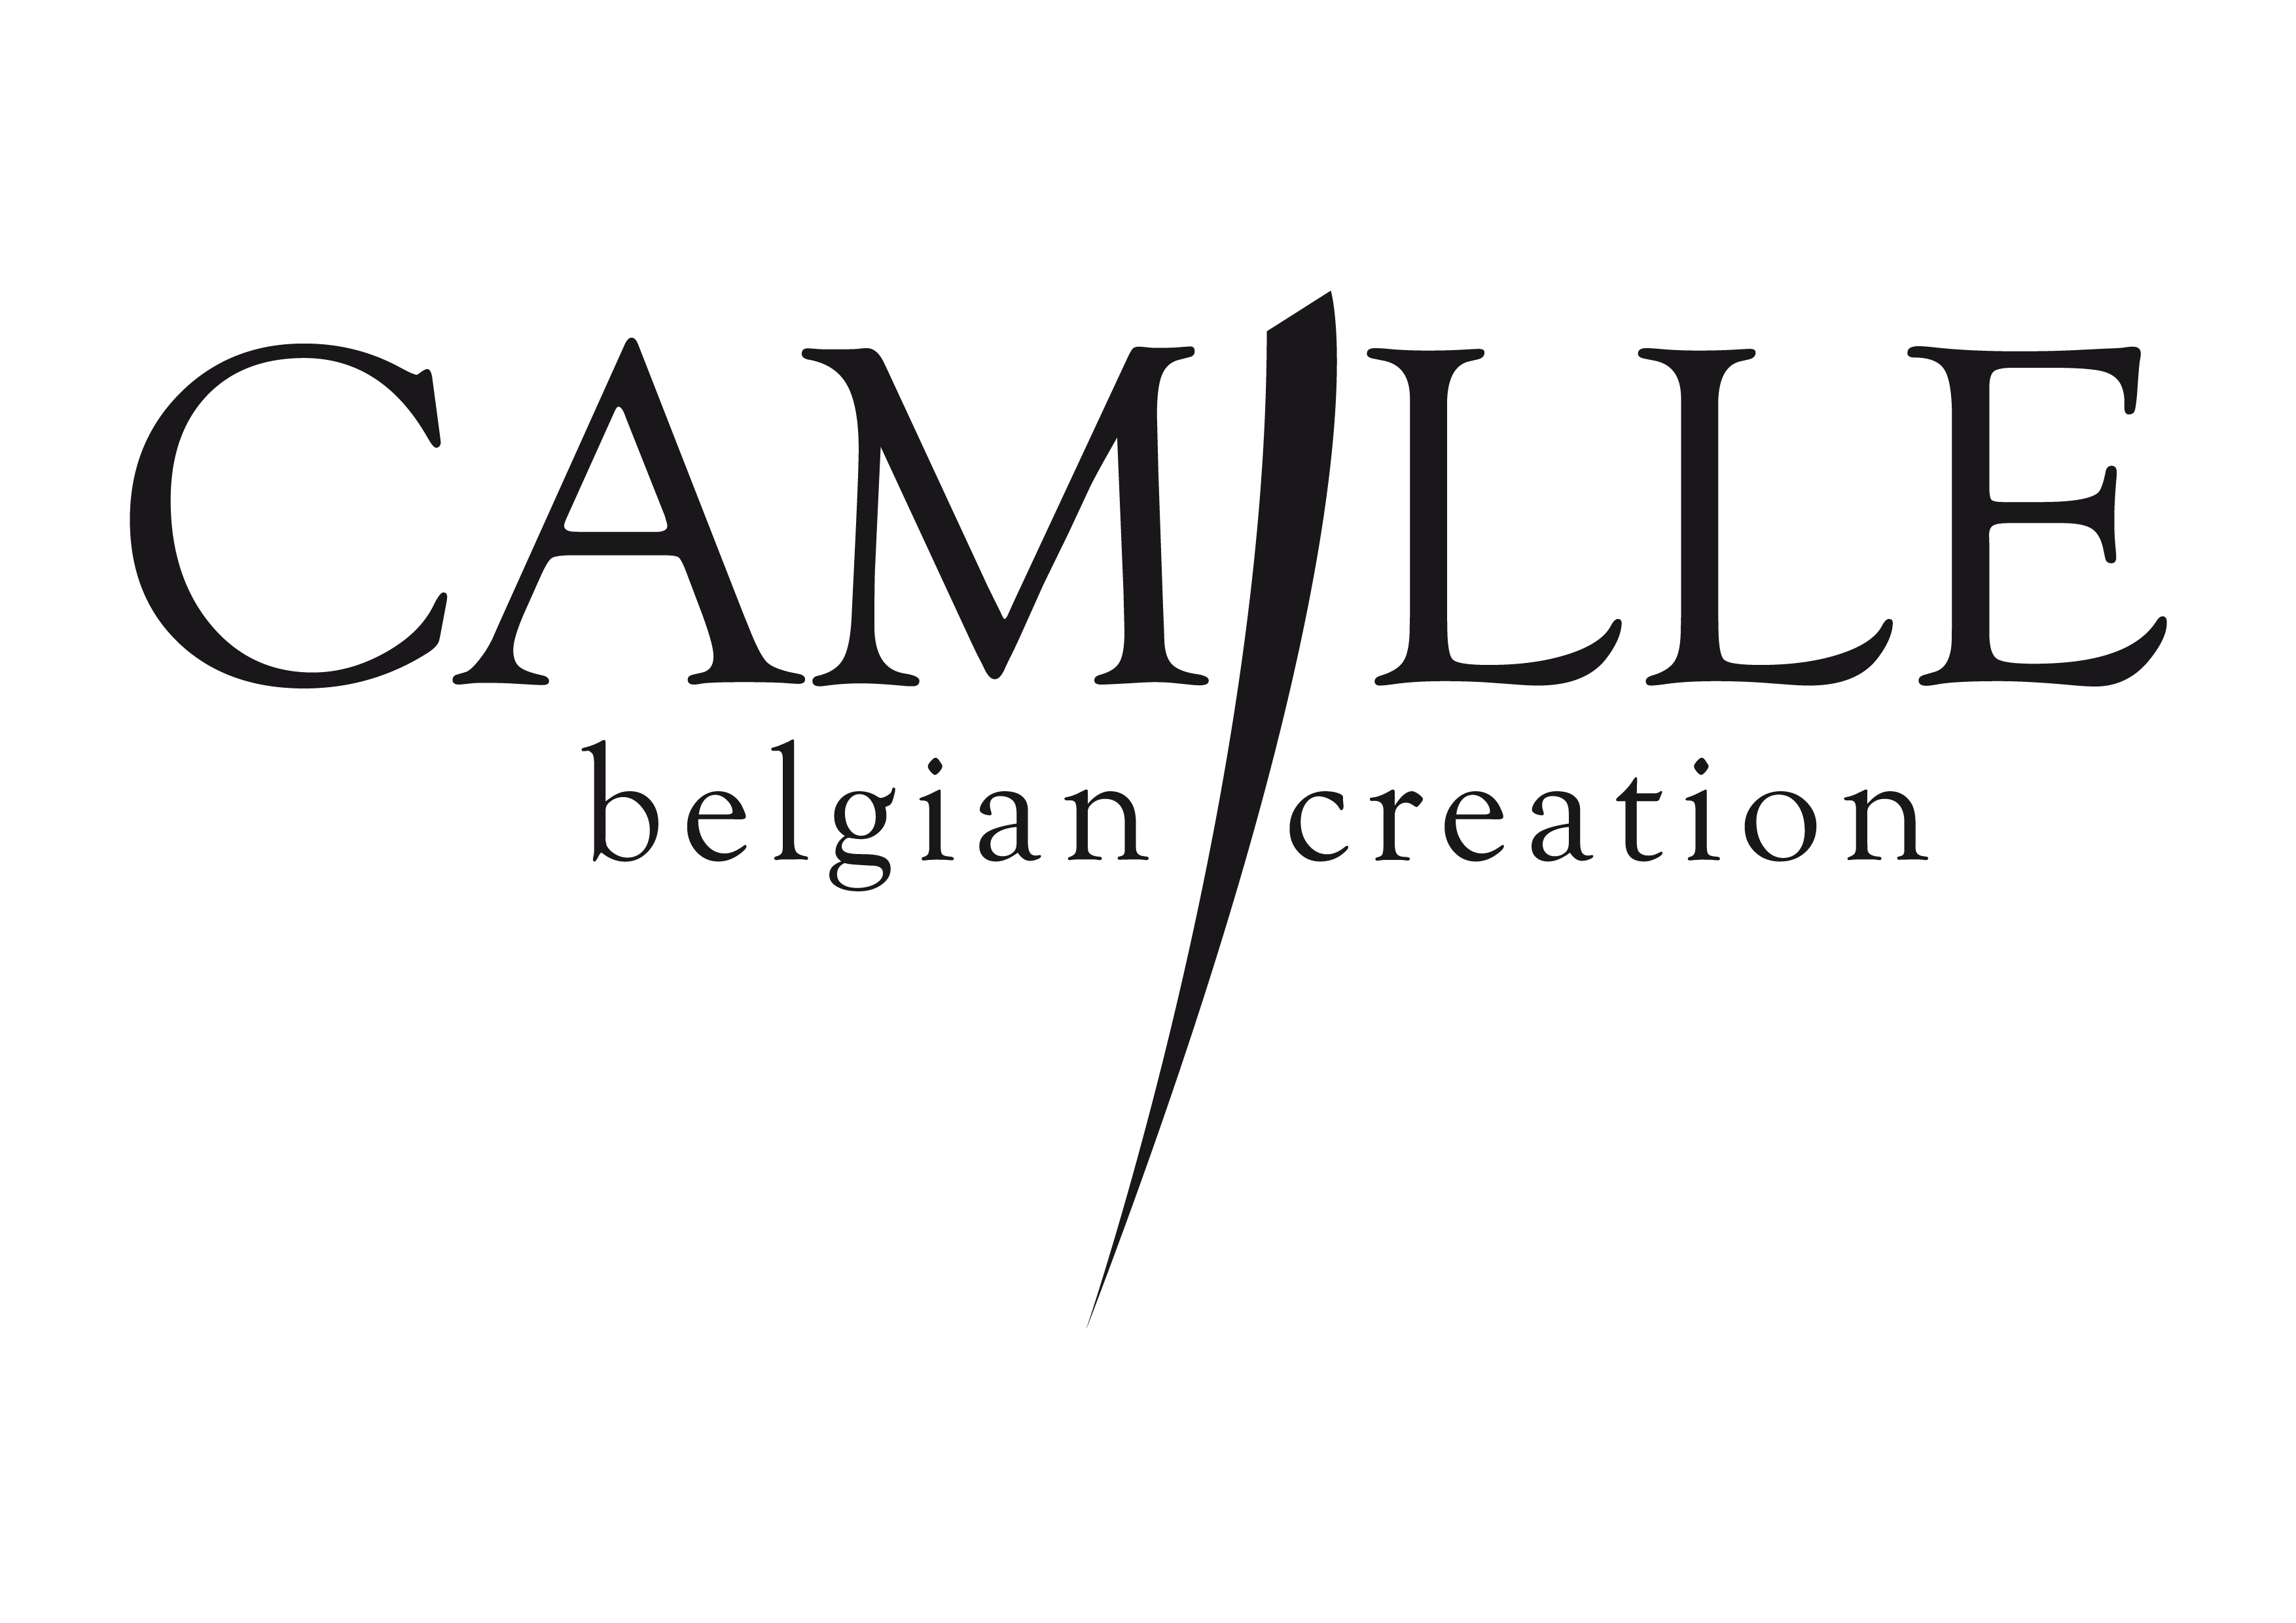 Camille Belgian Creation